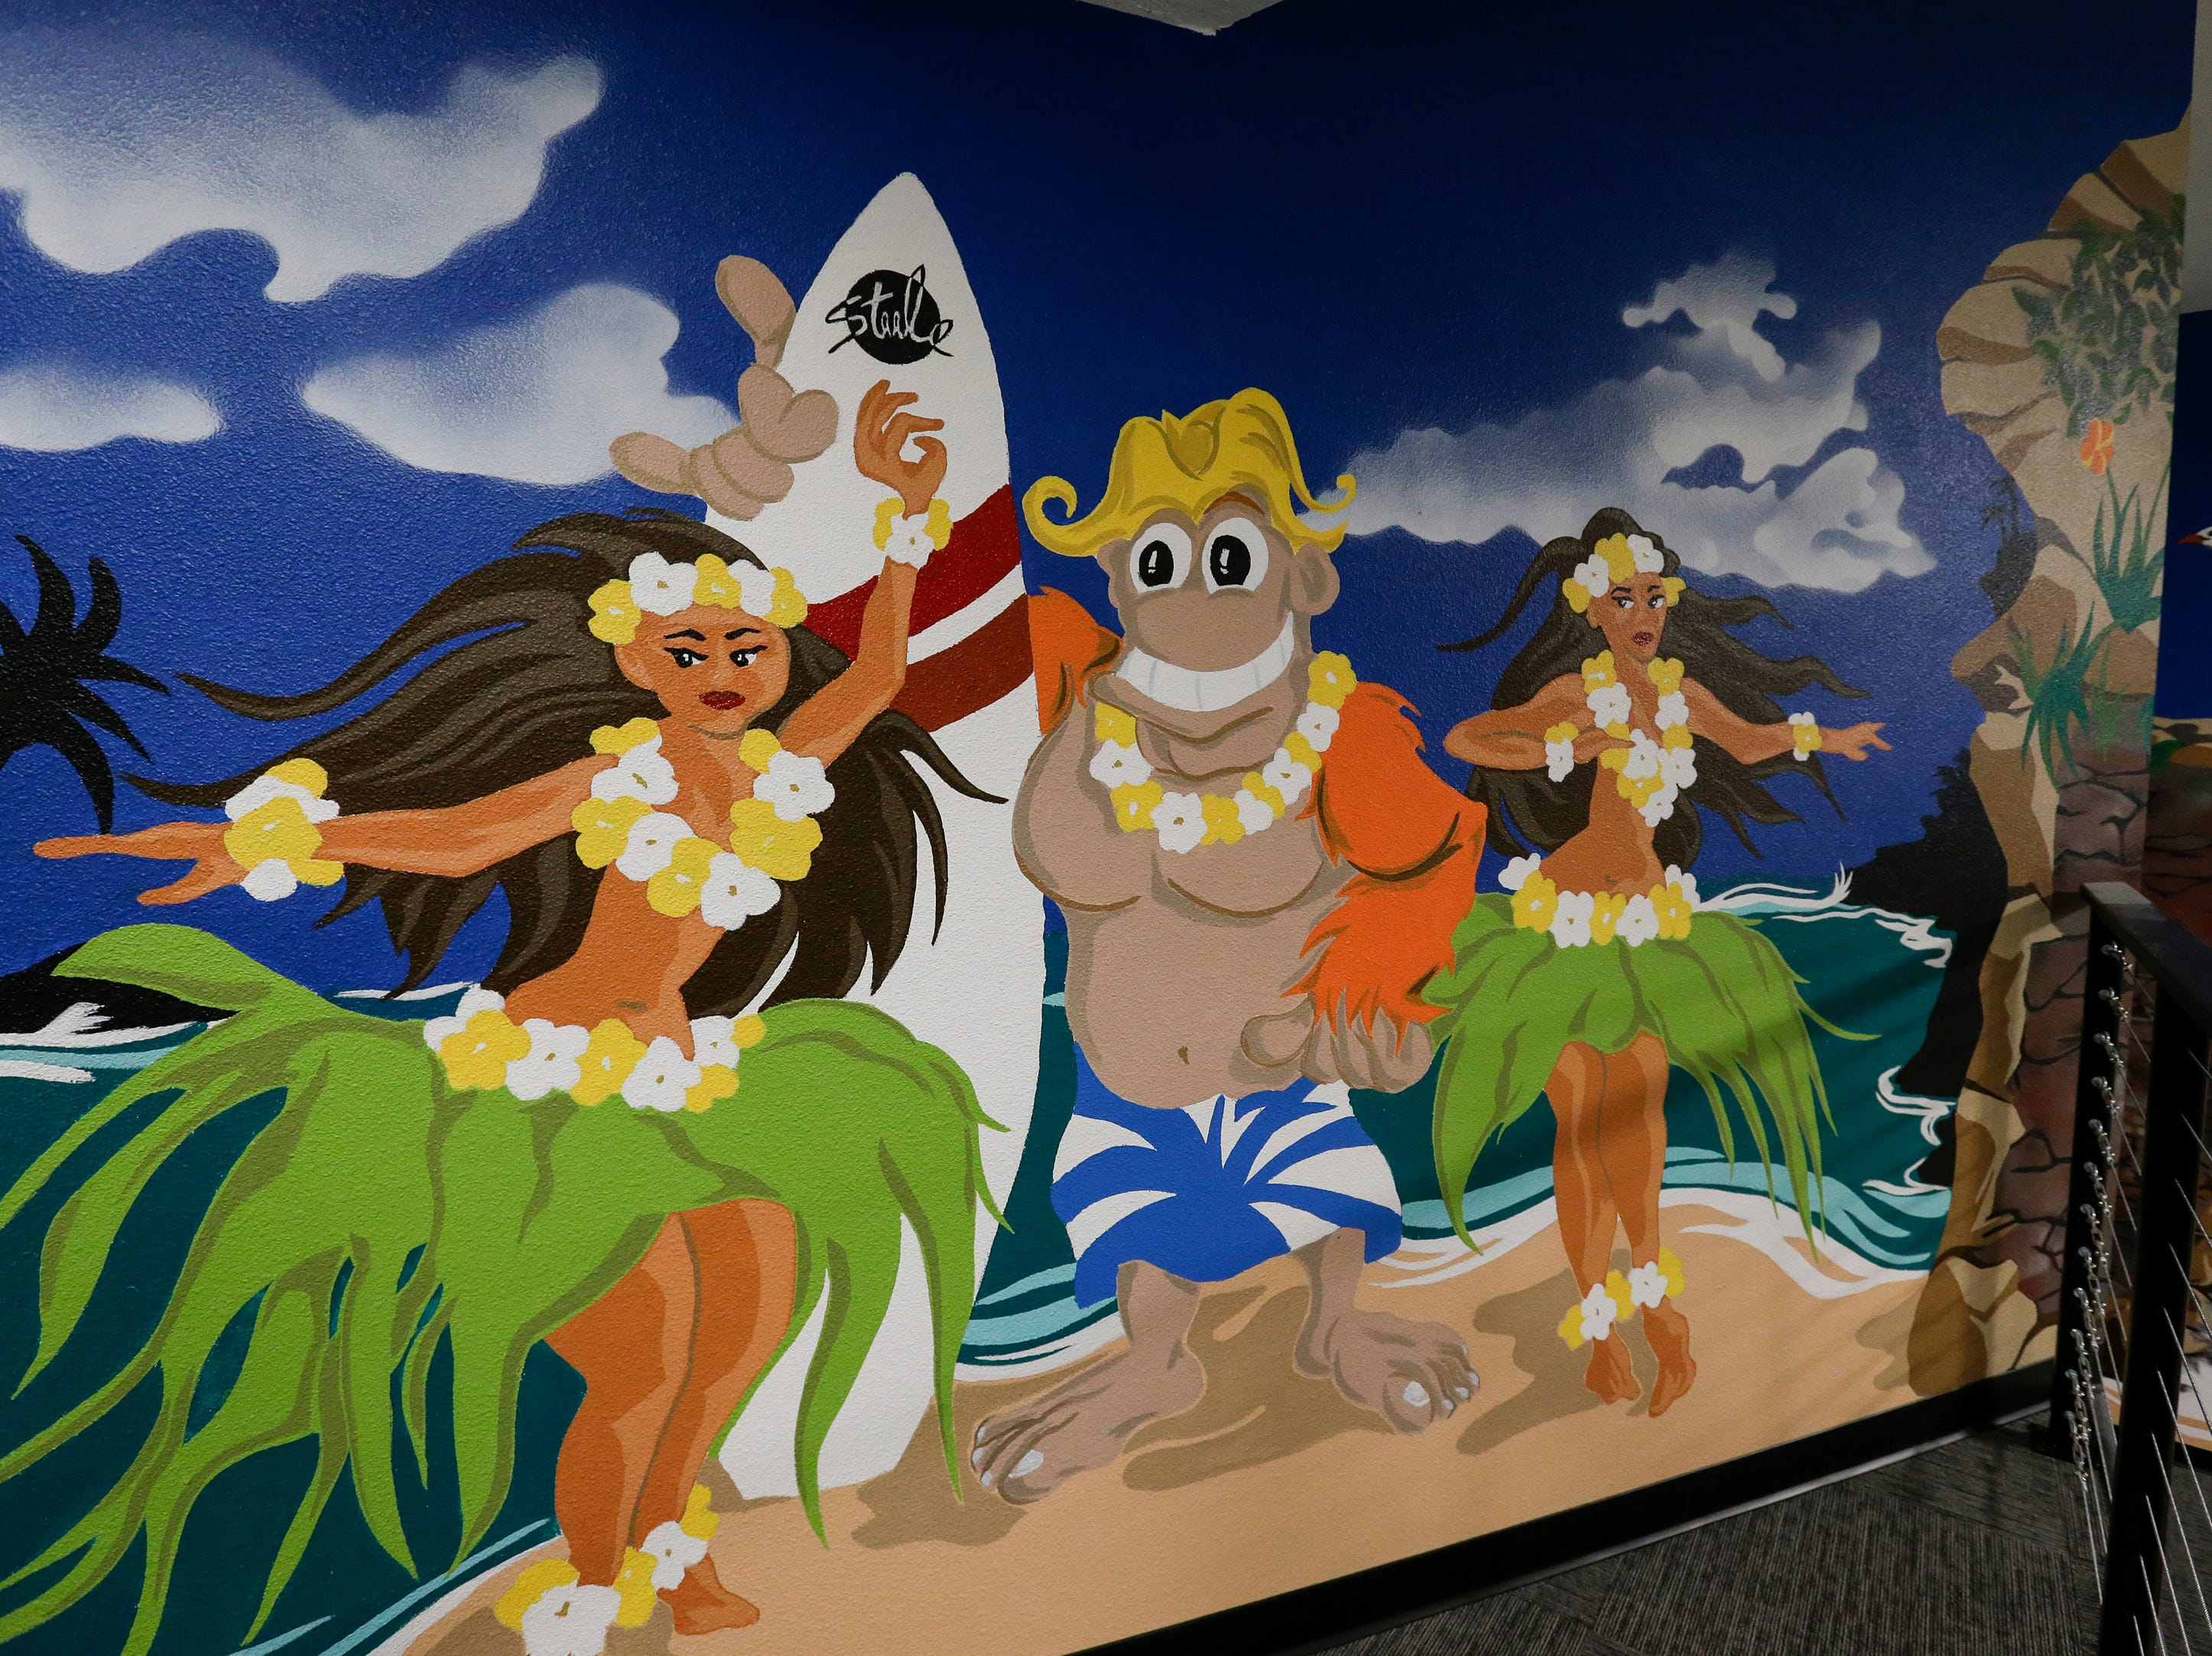 A detail of a mural in a party room at Strand Adventures Wednesday, May 1, 2019, in Manitowoc, Wis. Joshua Clark/USA TODAY NETWORK-Wisconsin